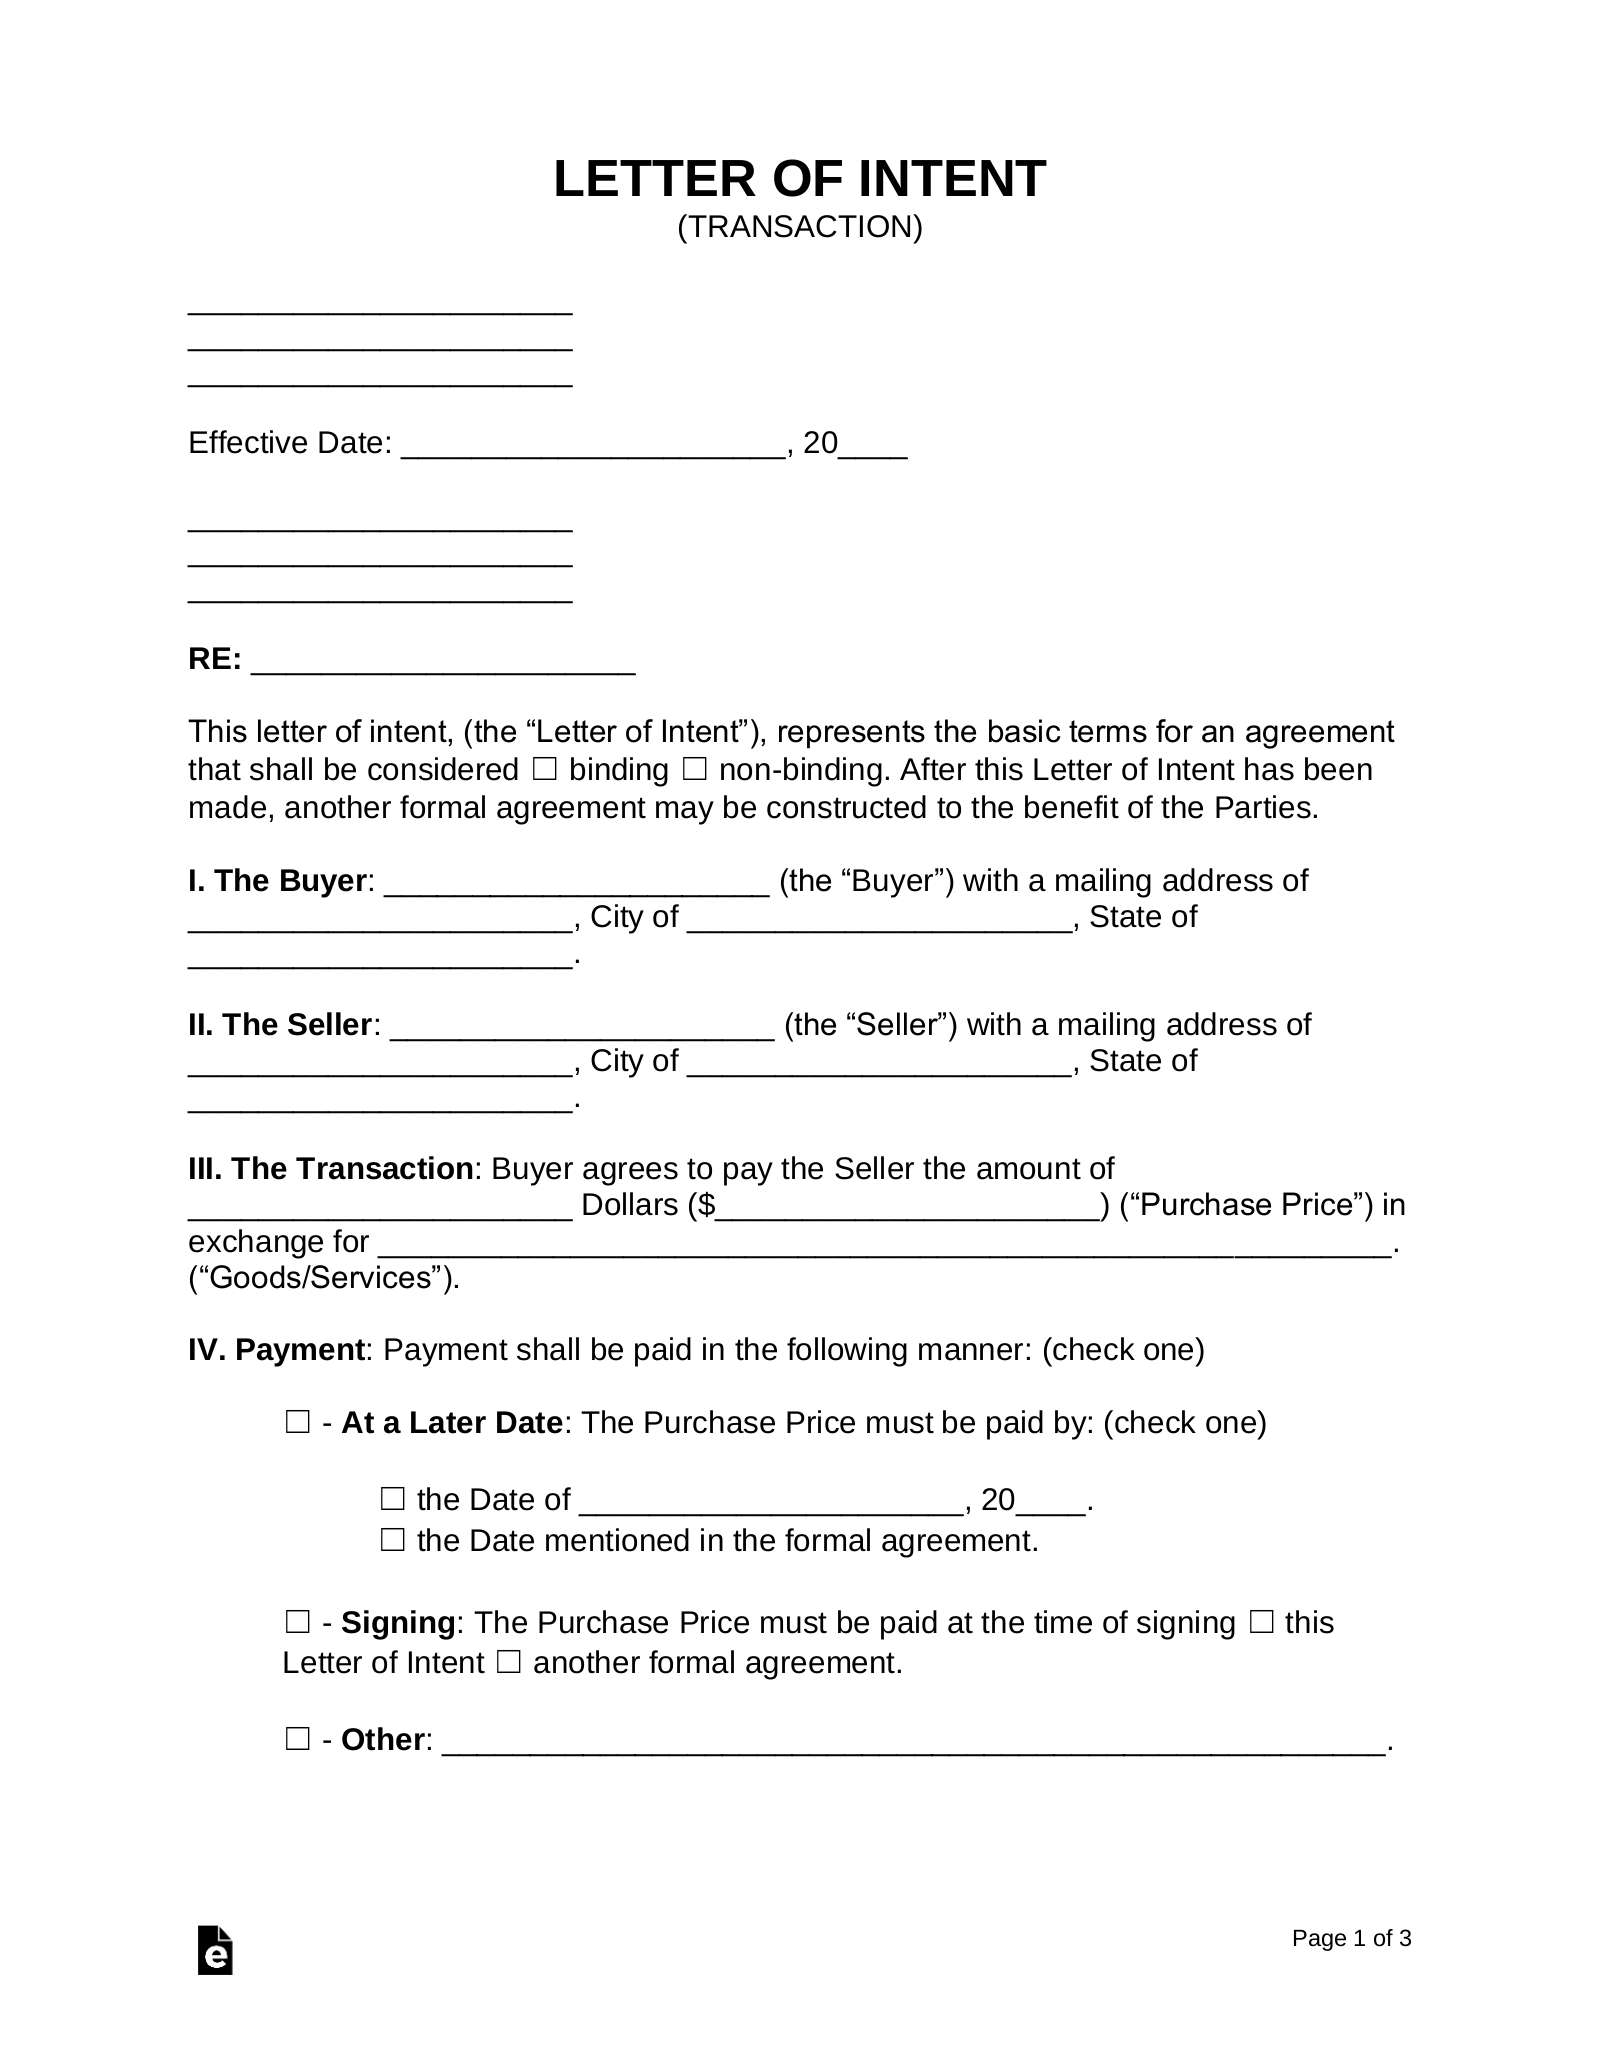 Free Letter of Intent LOI Templates   Word   PDF – eForms